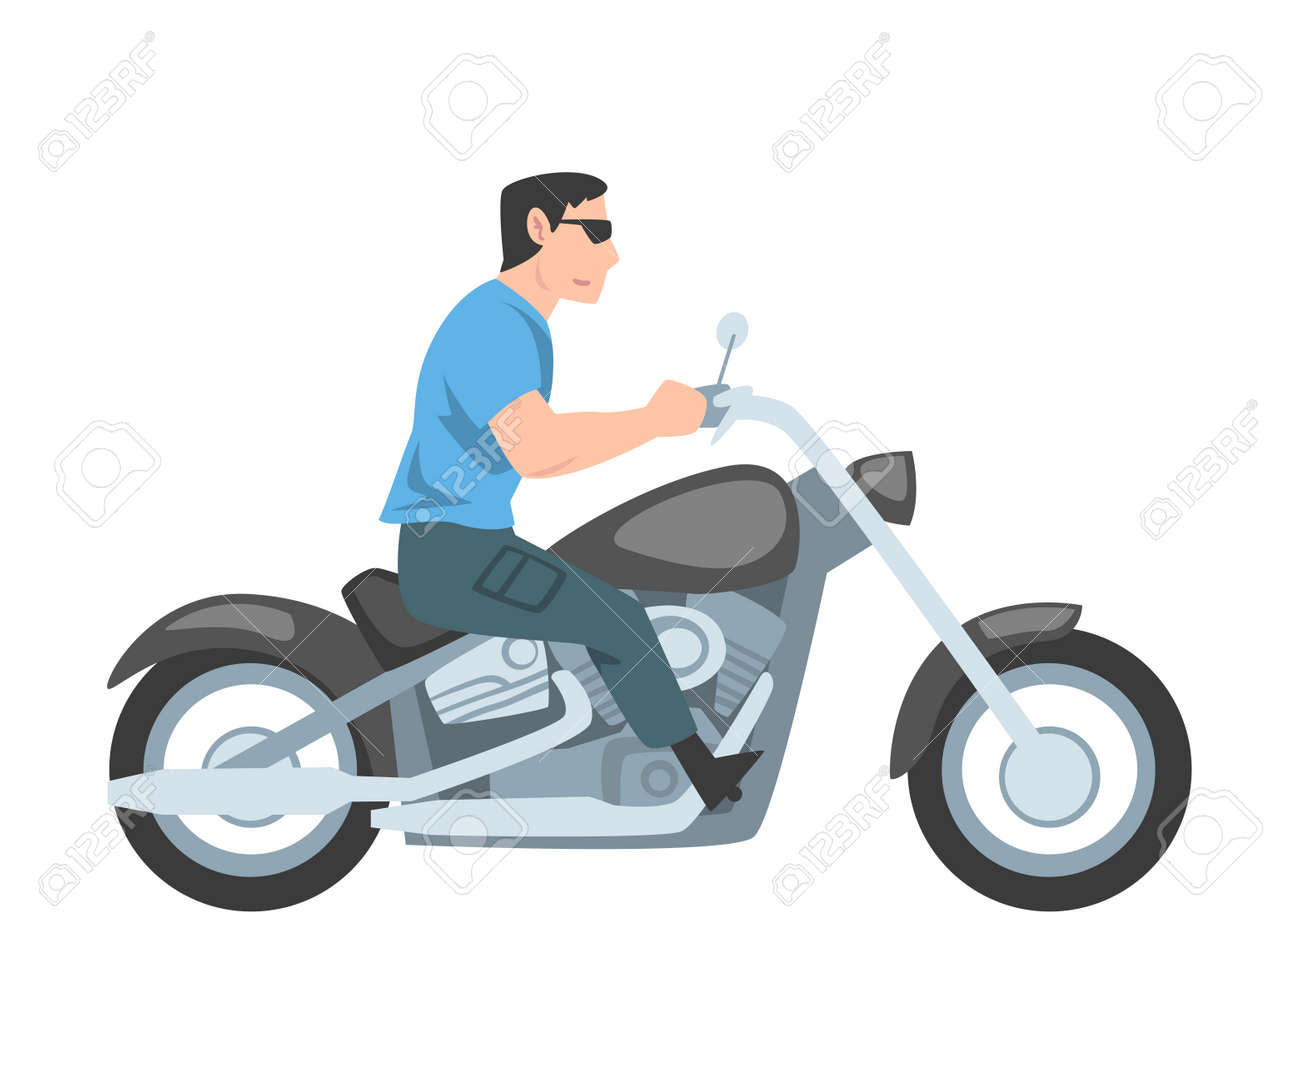 Man Riding Motorcycle, Side View of Male Biker Character Driving Motorbike Cartoon Style Vector Illustration - 154974239